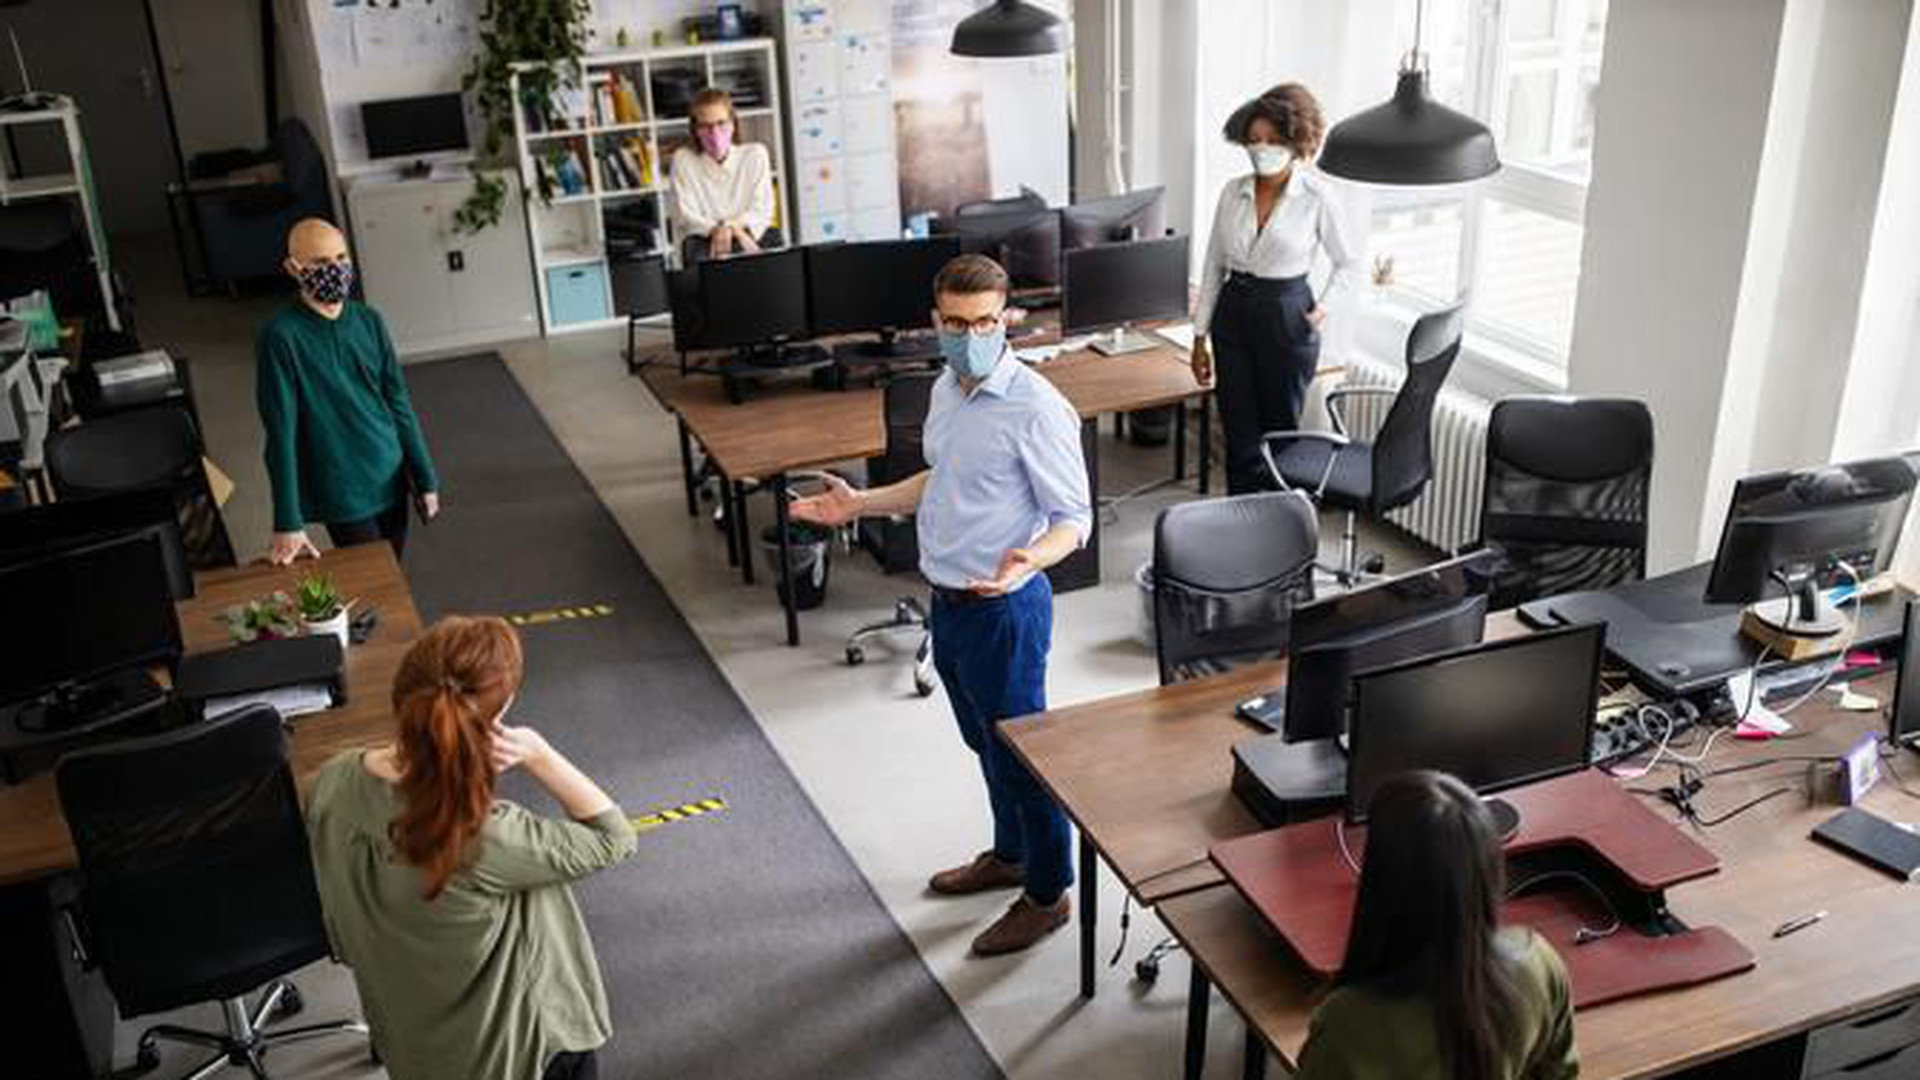 Return To Work 2021: What Will The Post-Pandemic Office Model Look Like?